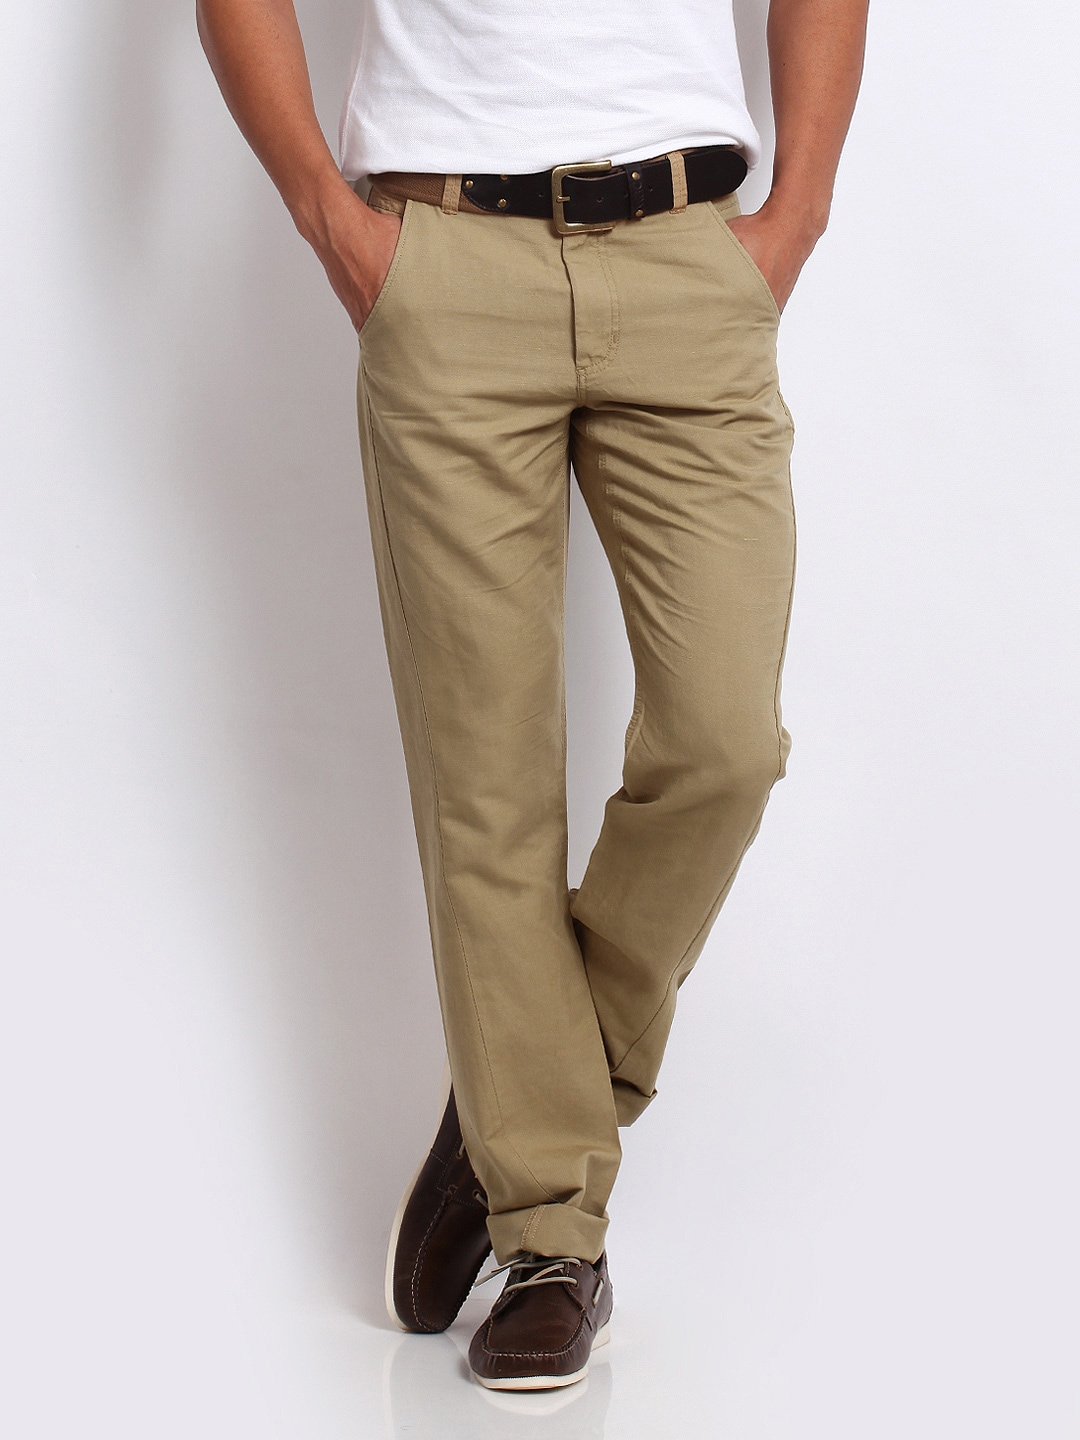 Shop for men's Pants, trousers & slacks online at bestkapper.tk Browse the latest Pants styles for men from Jos. A Bank. FREE shipping on orders over $